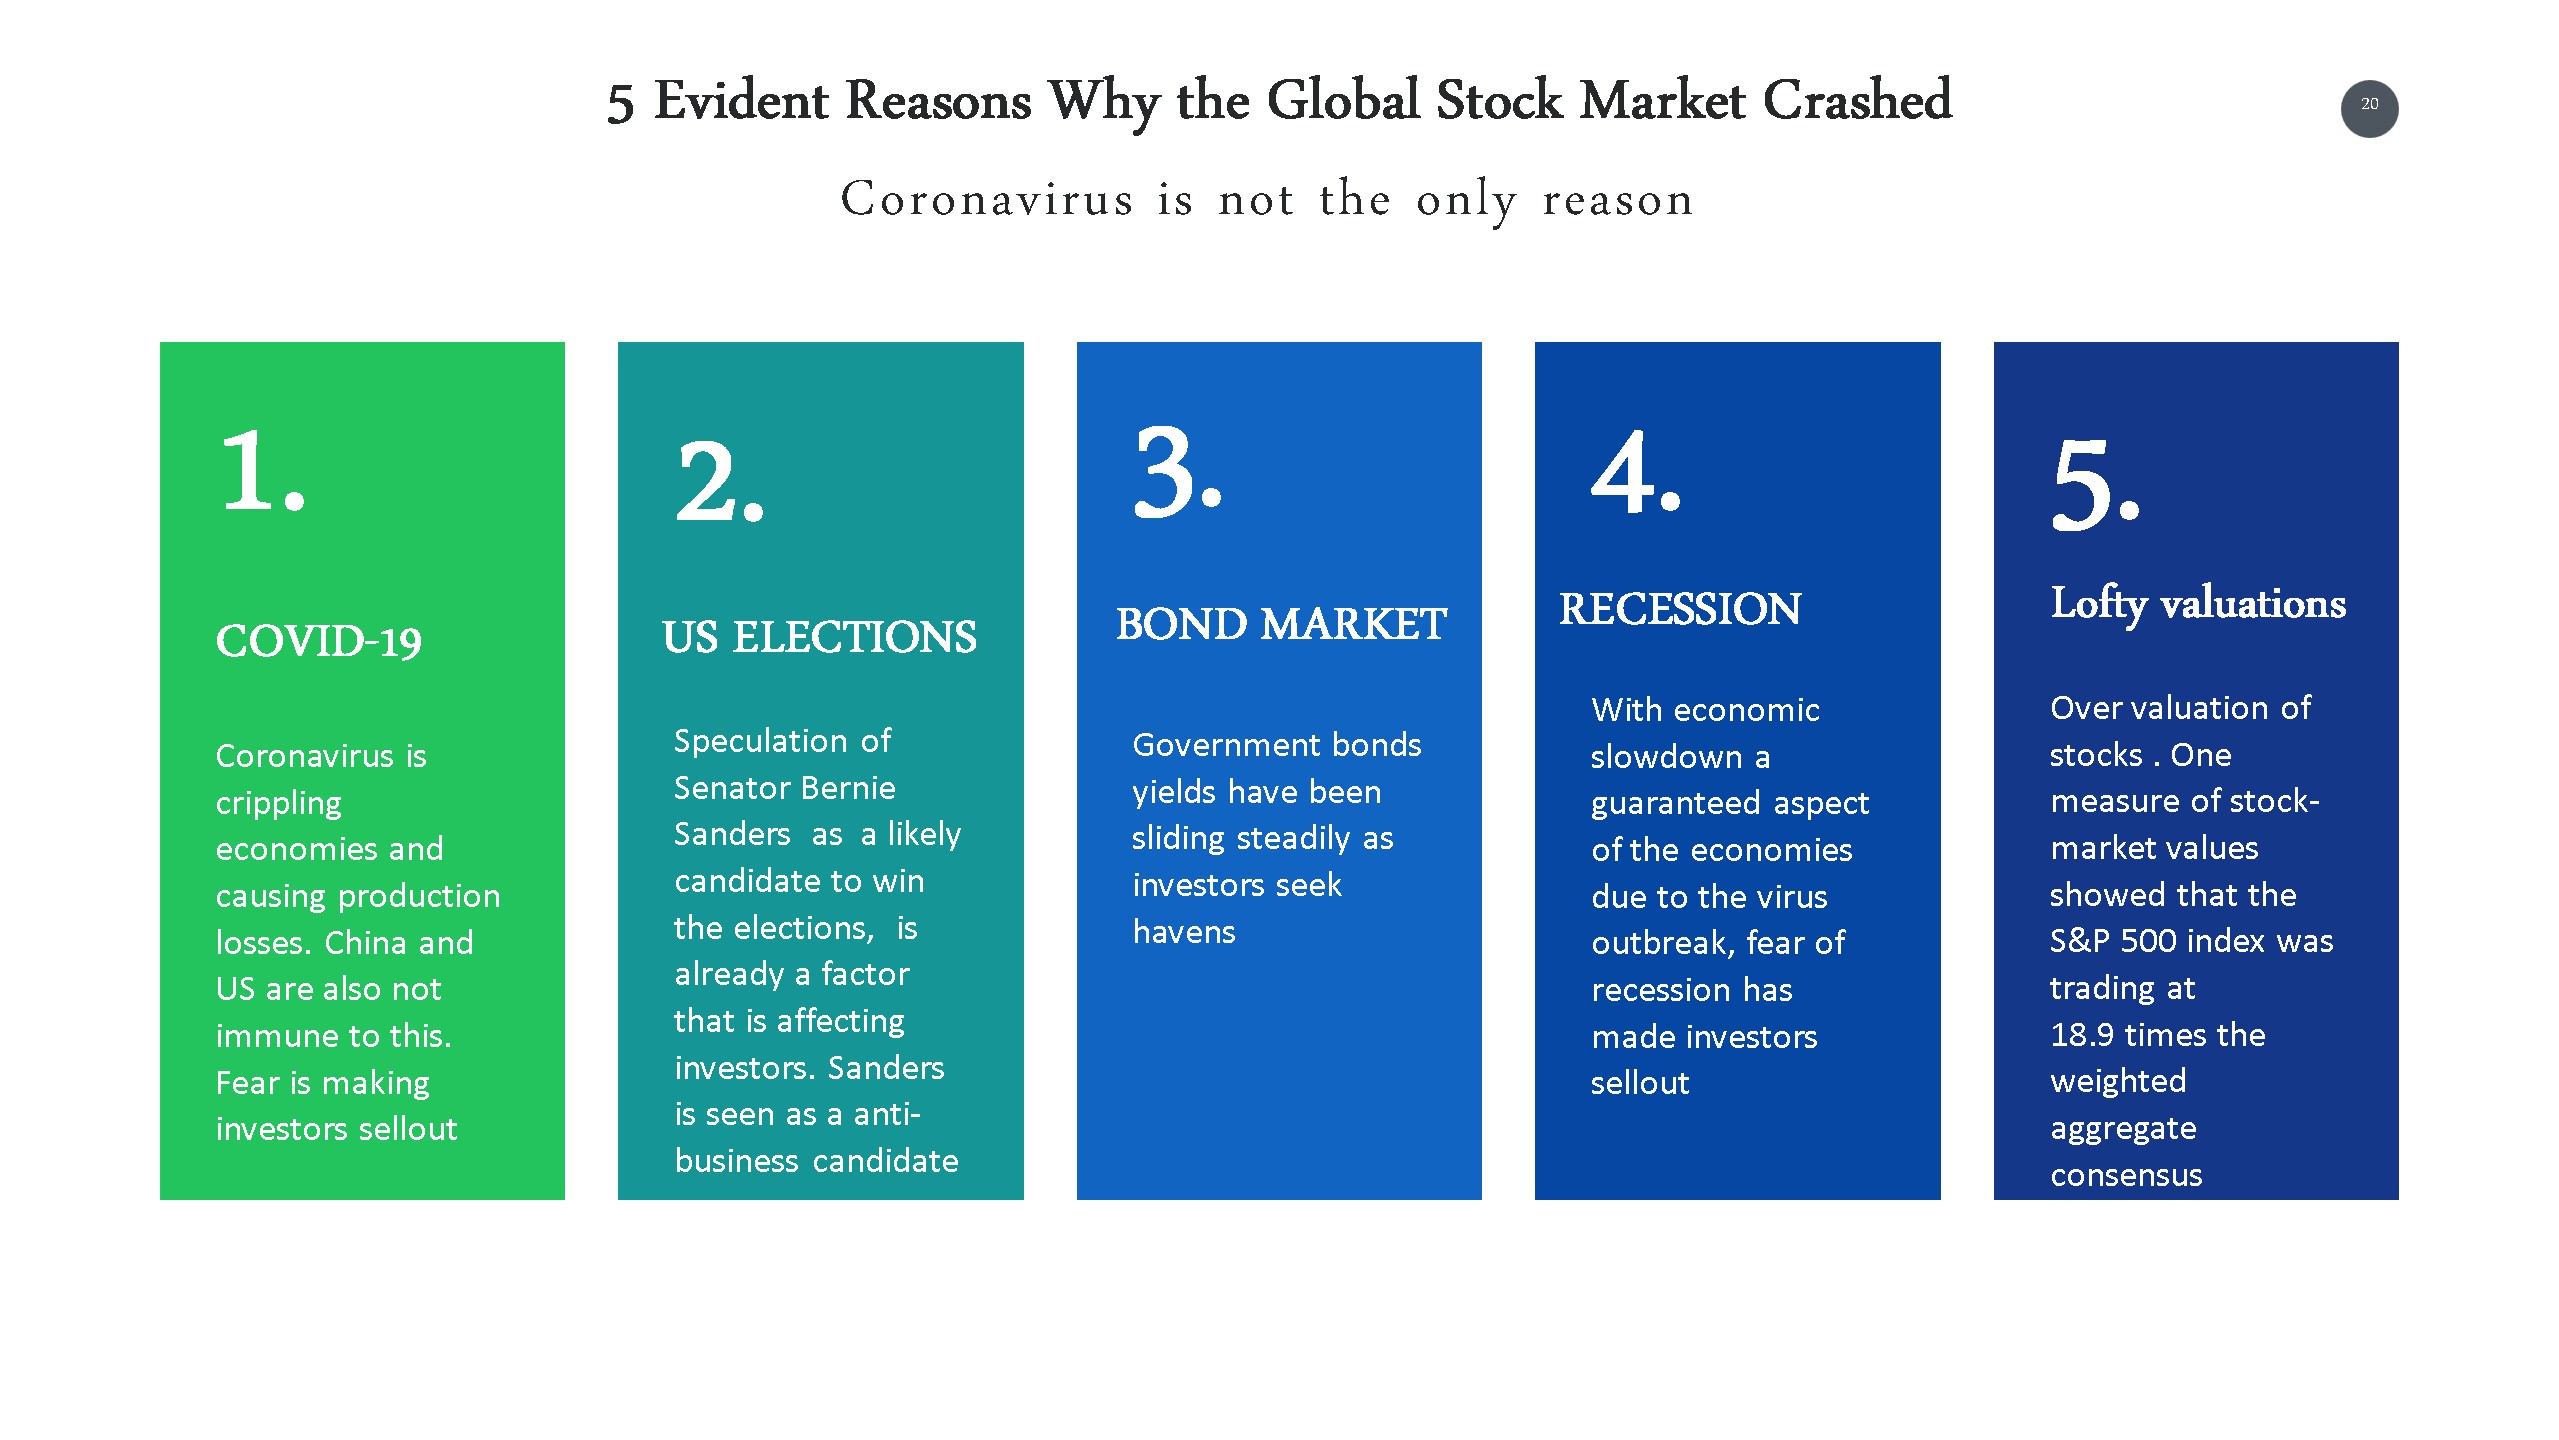 5 REASONS WHY THE STOCK MARKET CRASHED